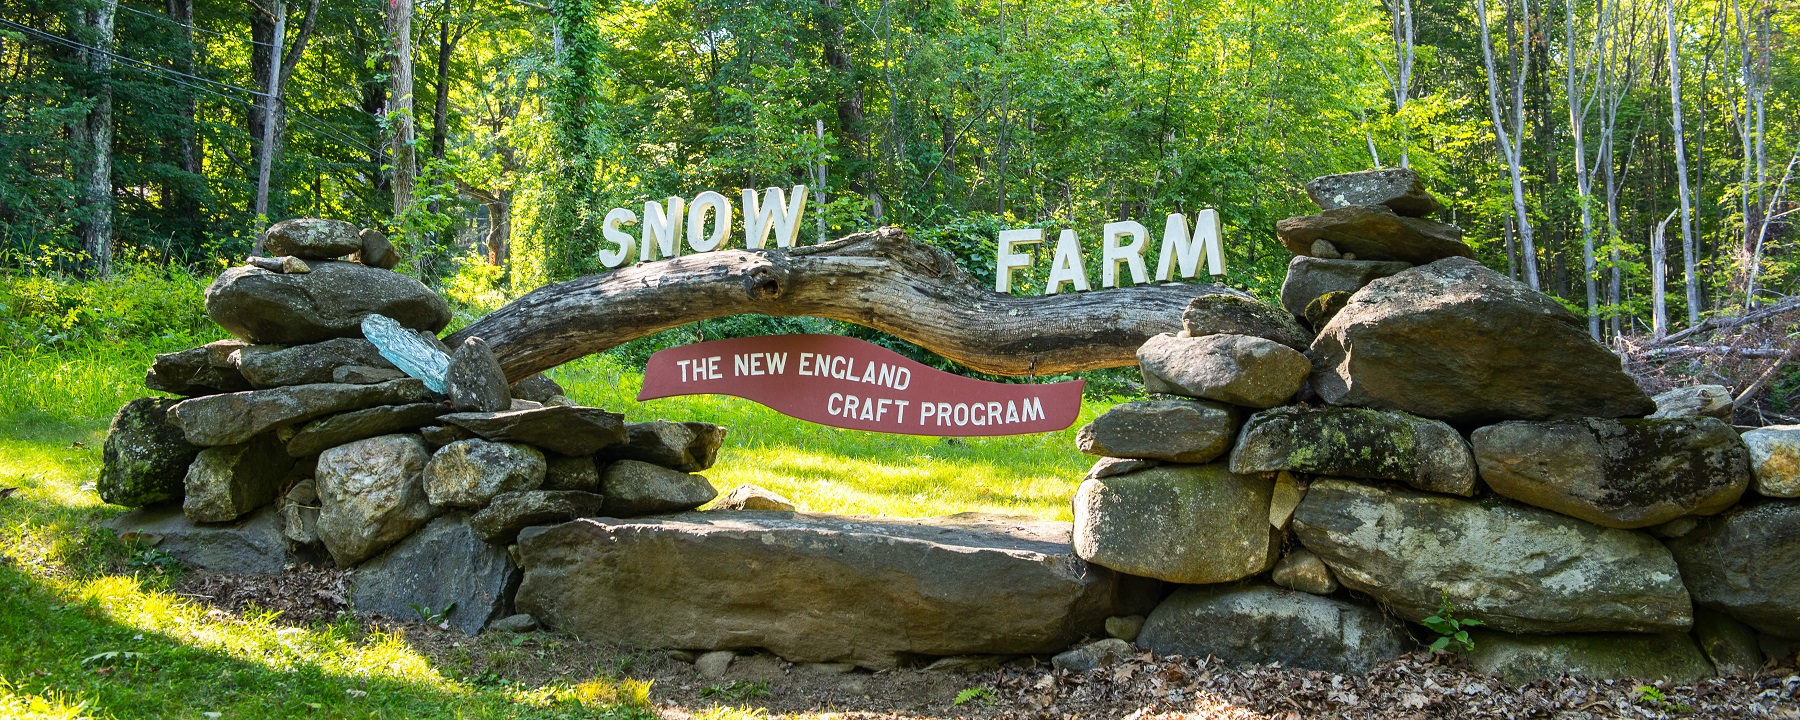 rustic farm signs, snow farm